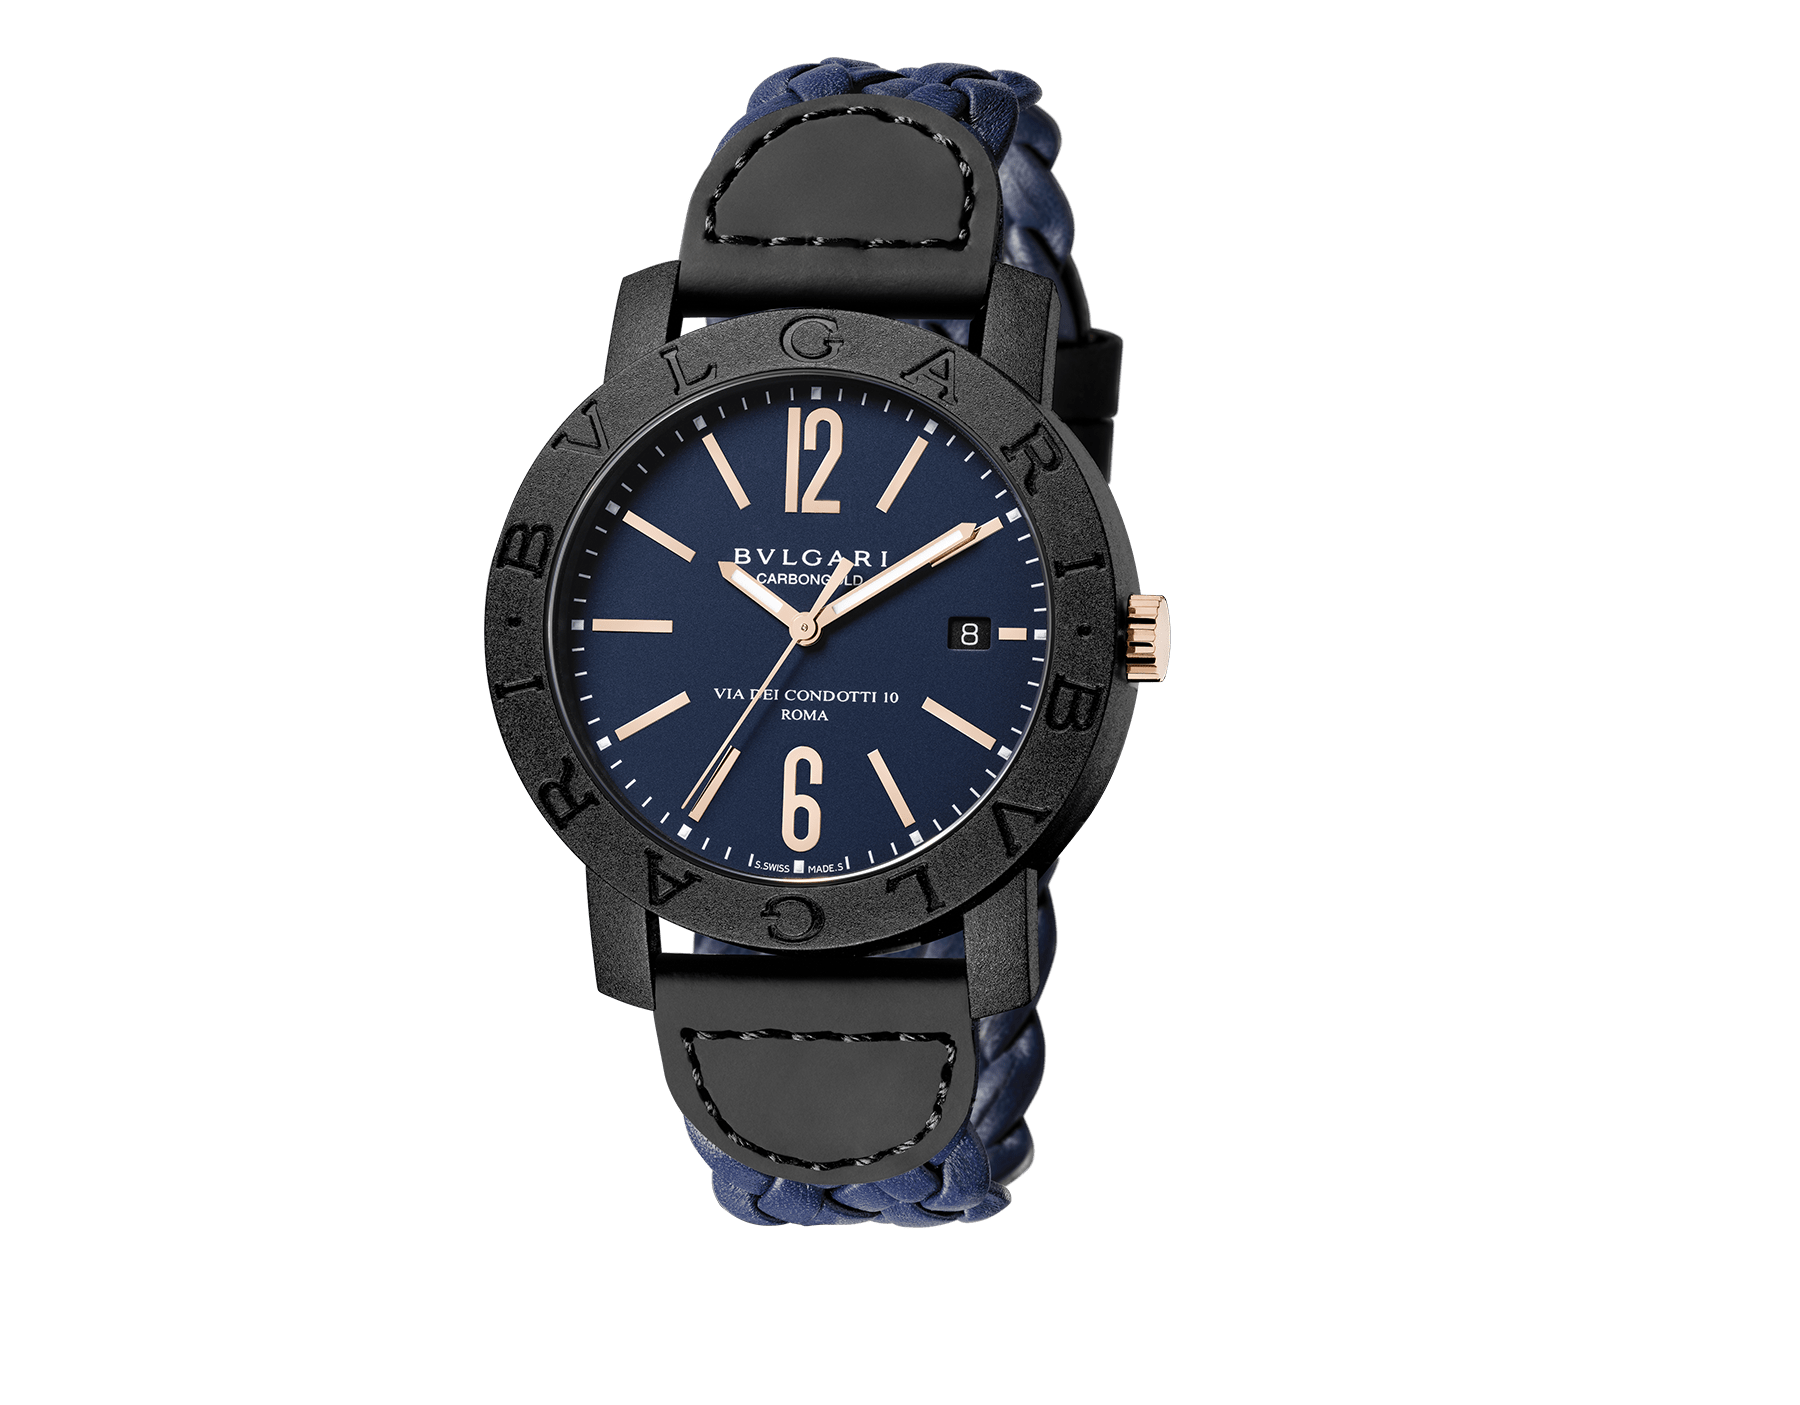 BVLGARI BVLGARI CARBON GOLD watch with mechanical movement, automatic winding and date, carbon gold case, blue dial and woven leather bracelet 102634 image 1